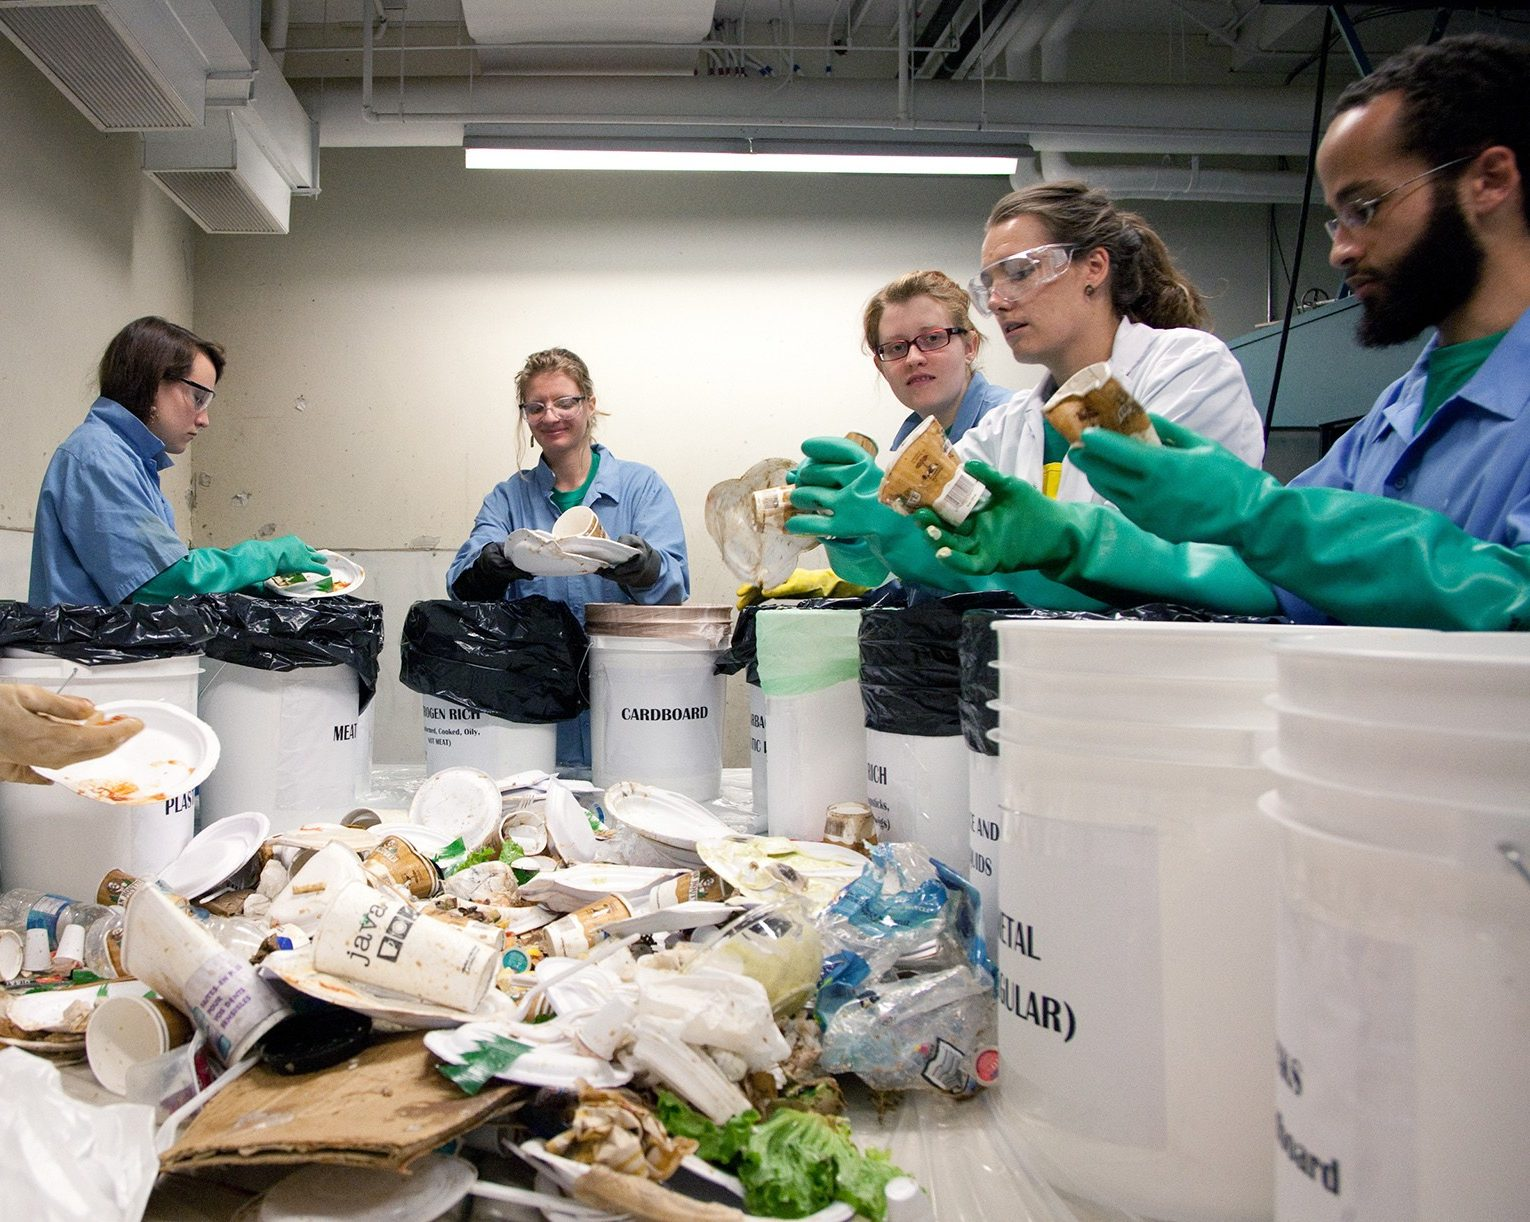 a group of people in lab coats and gloves sorting waste for recycling